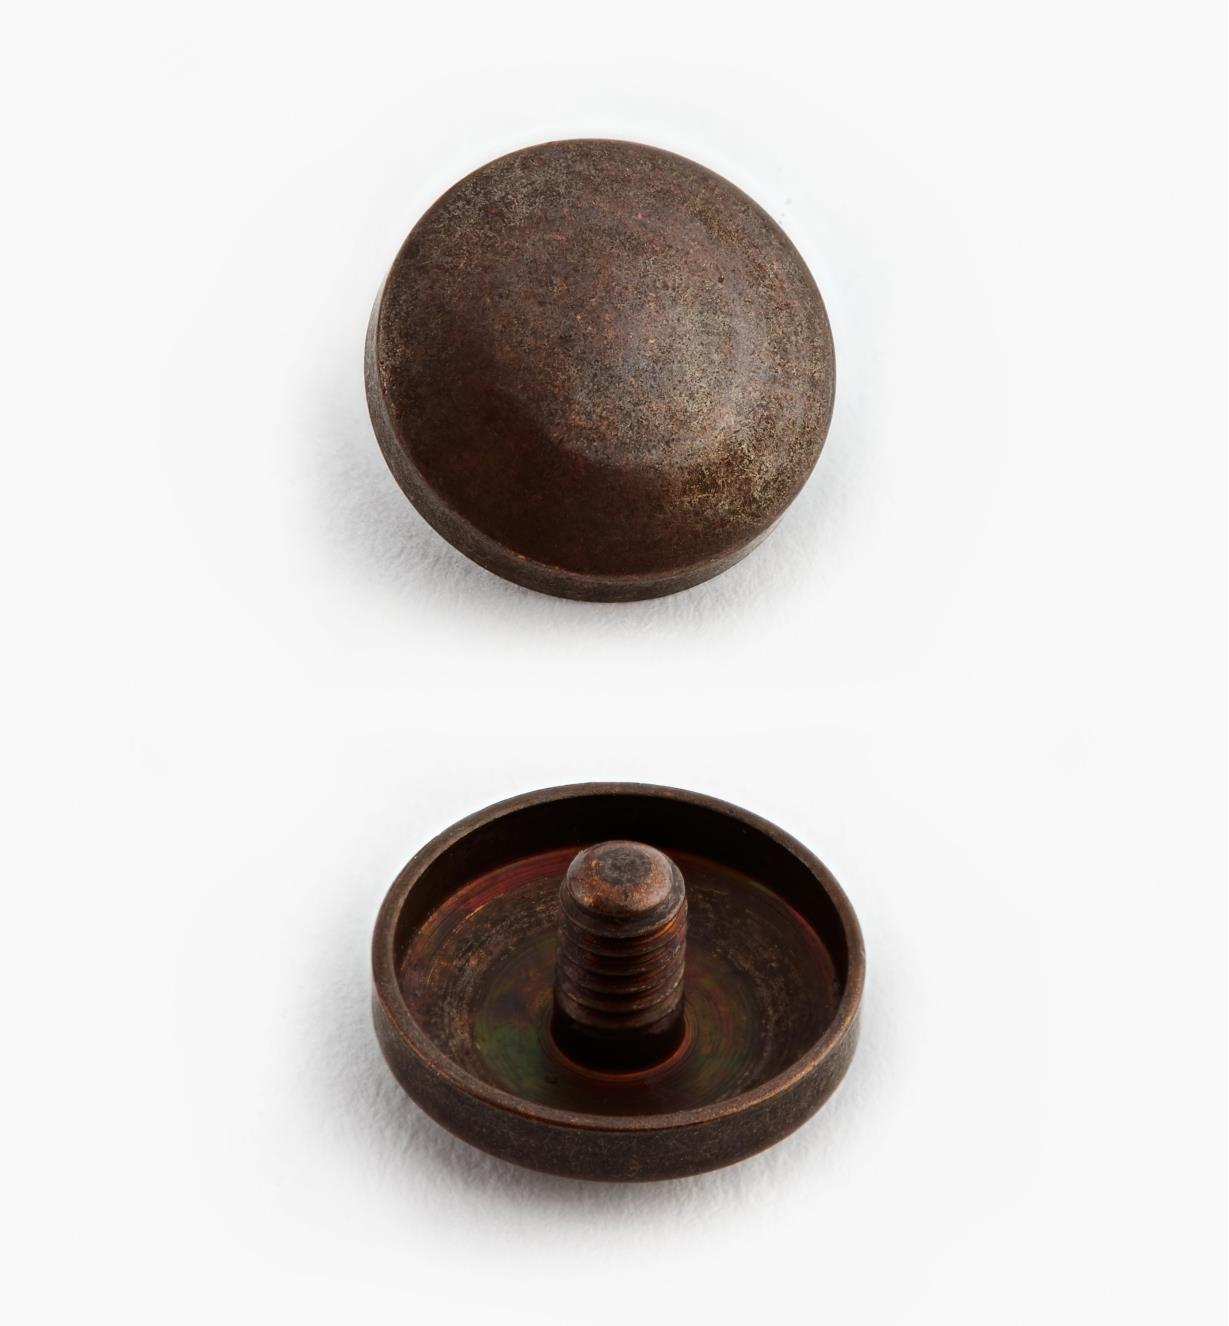 00K4201 - Cache-vis, fini bronze antique, 12 mm,le paquet de 24